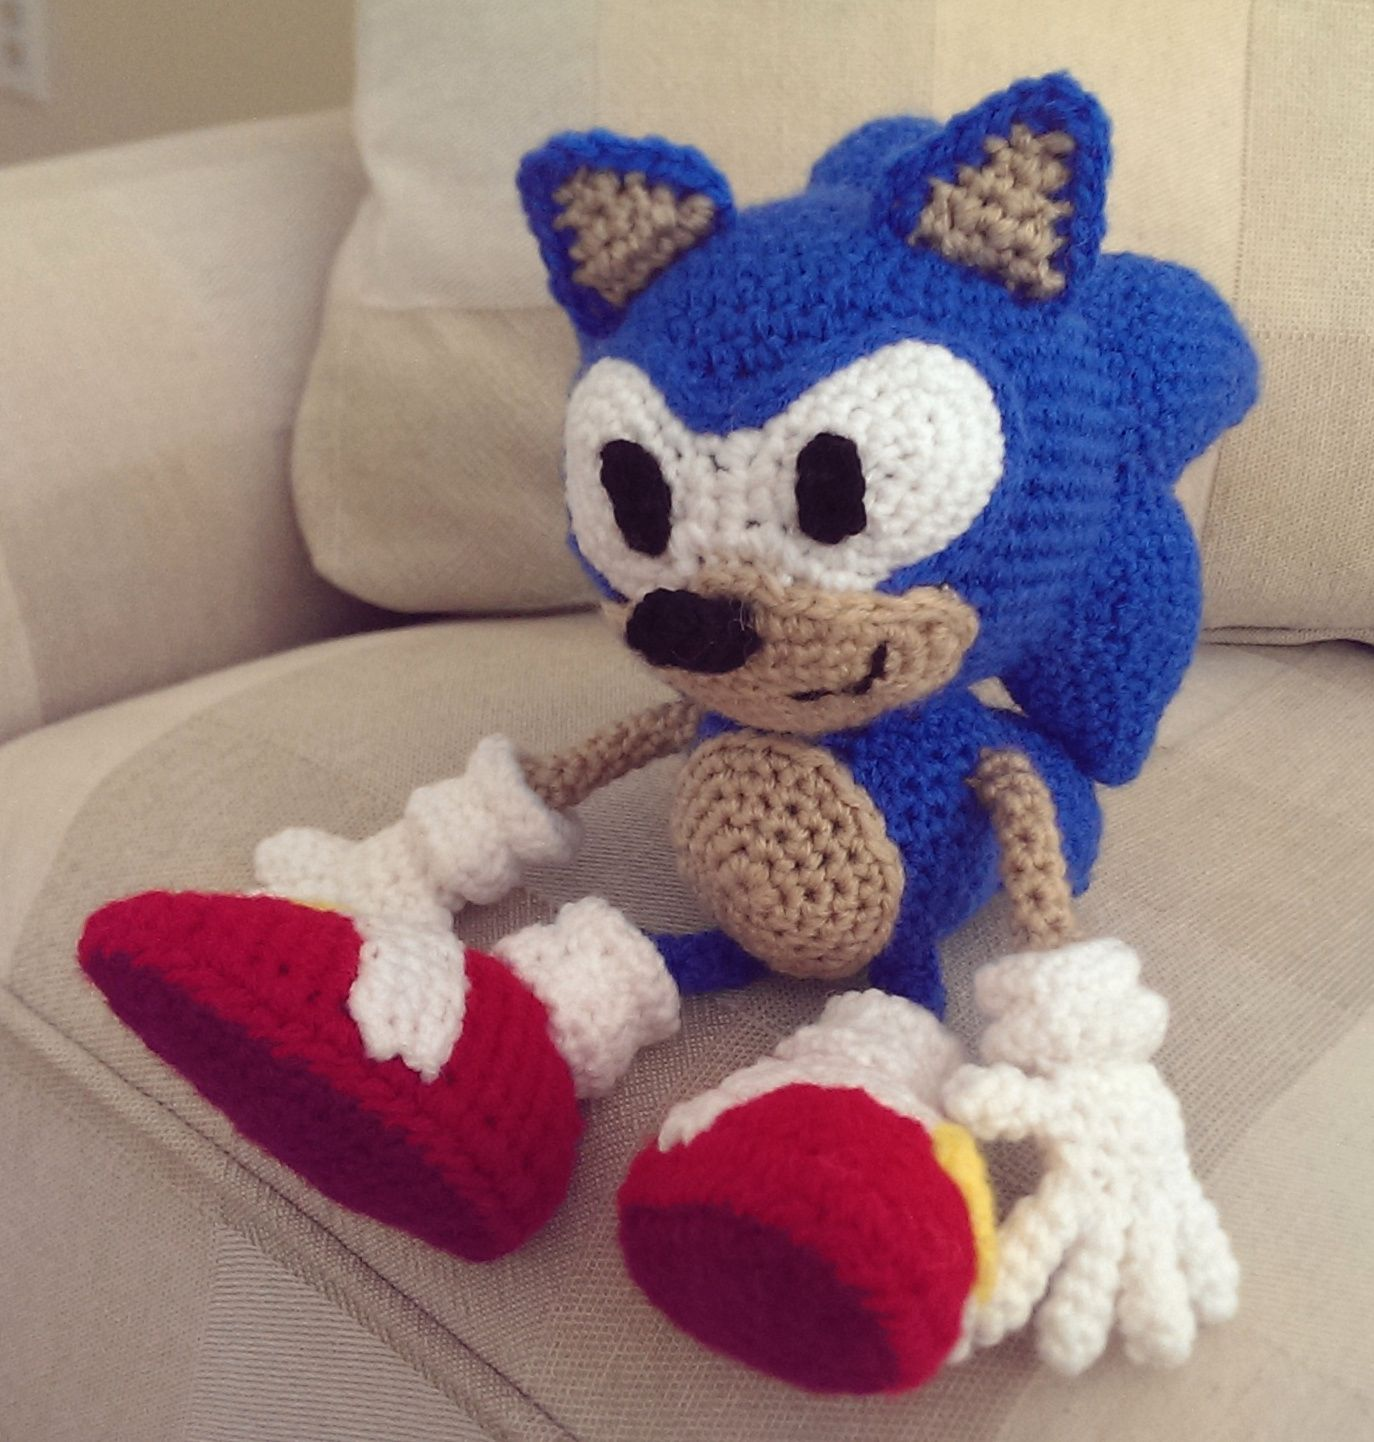 Crocheted Sonic the Hedgehog | amigurumis famosos | Pinterest ...